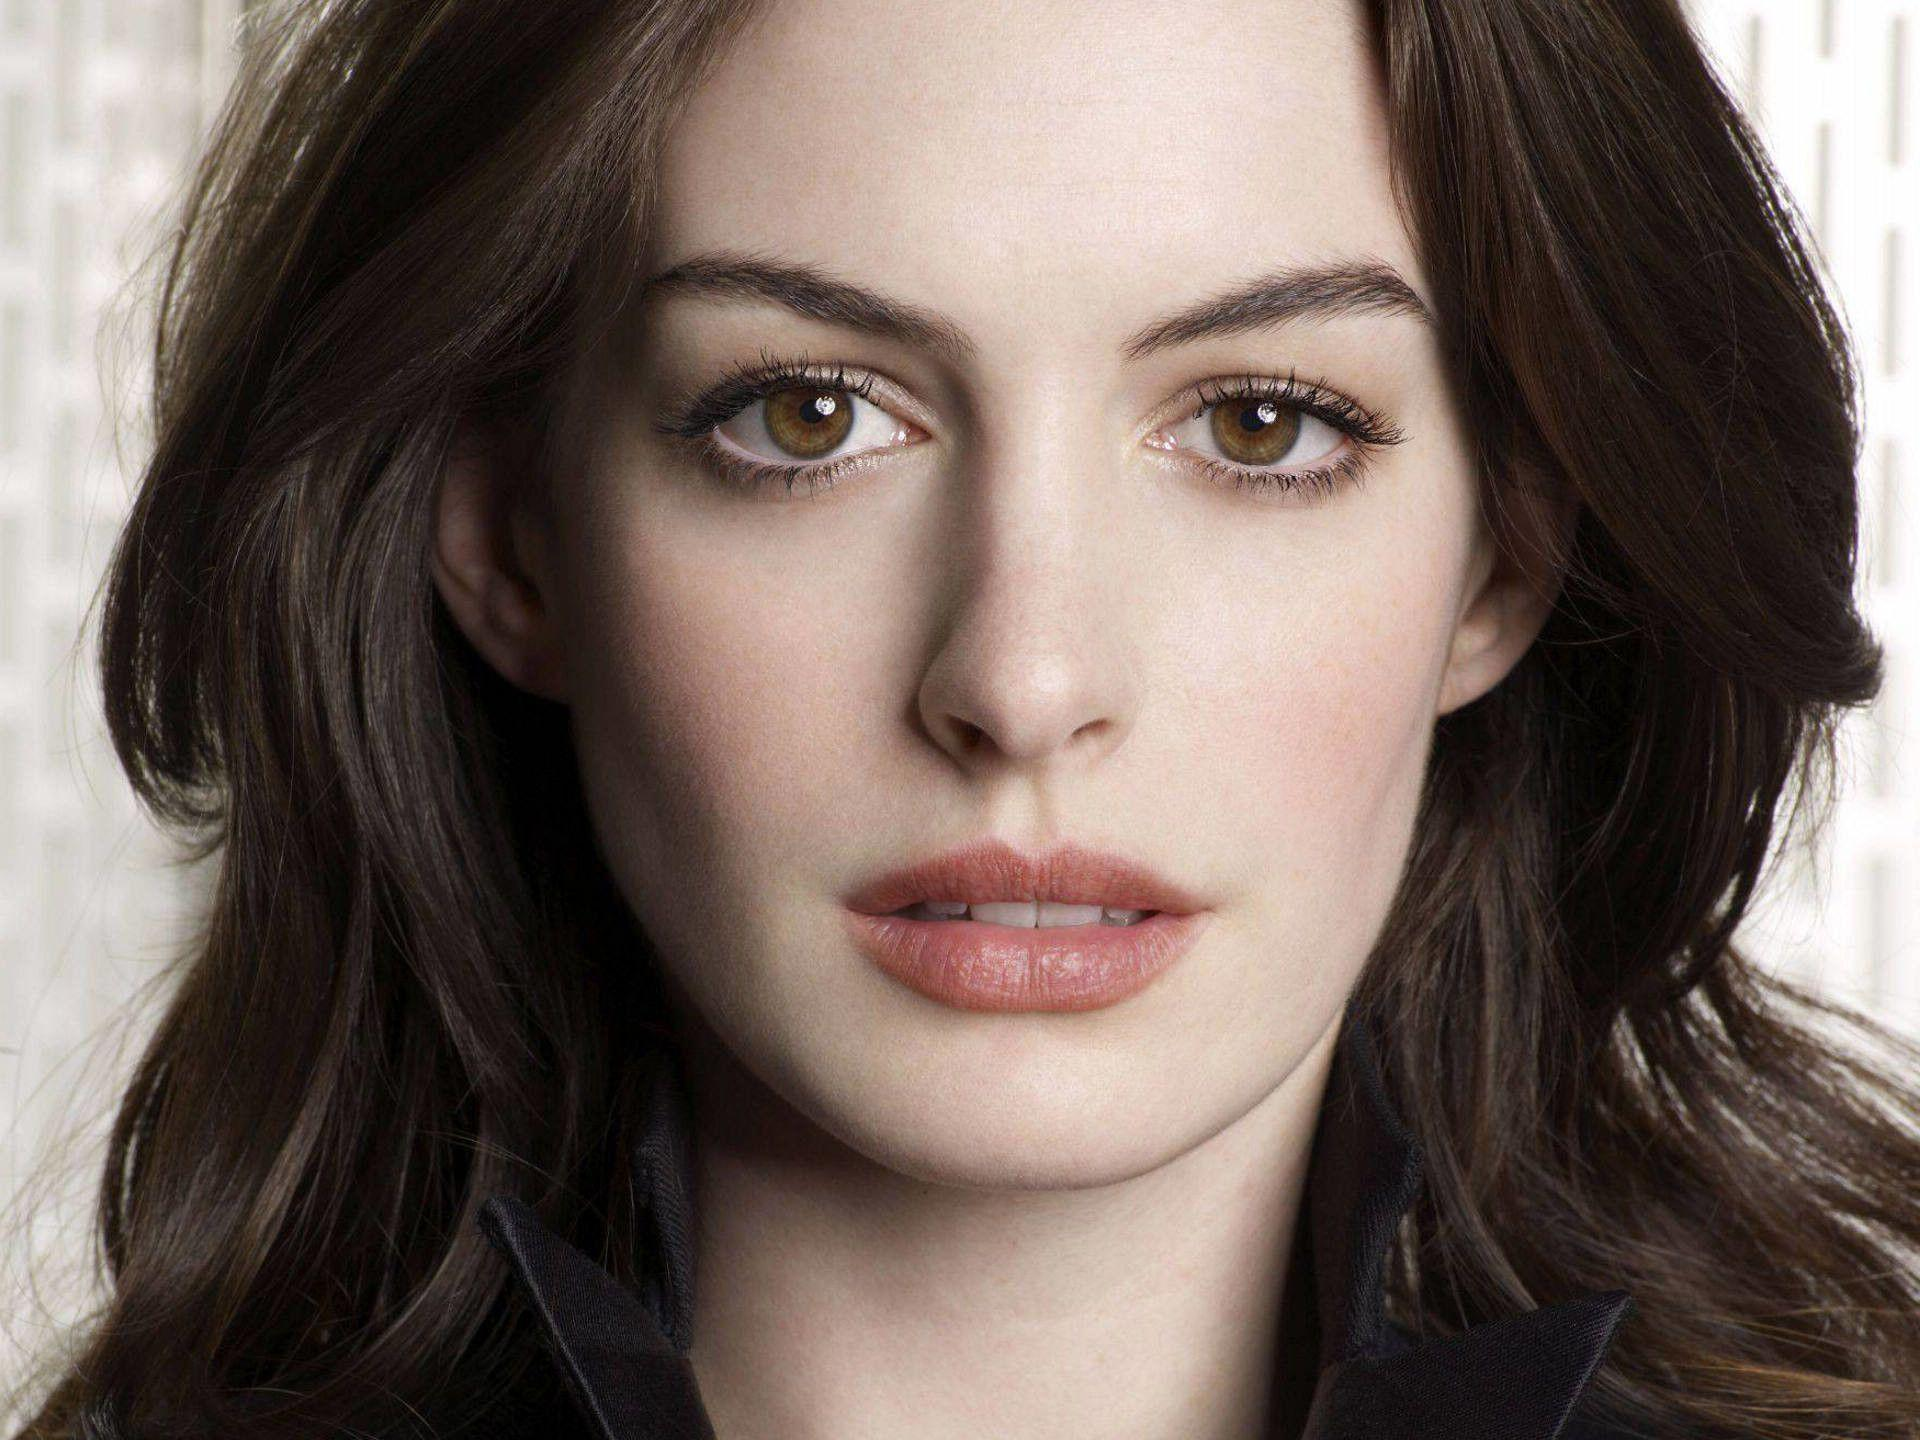 Anne hathaway wallpapers wallpaper cave - High resolution wallpaper celebrity ...